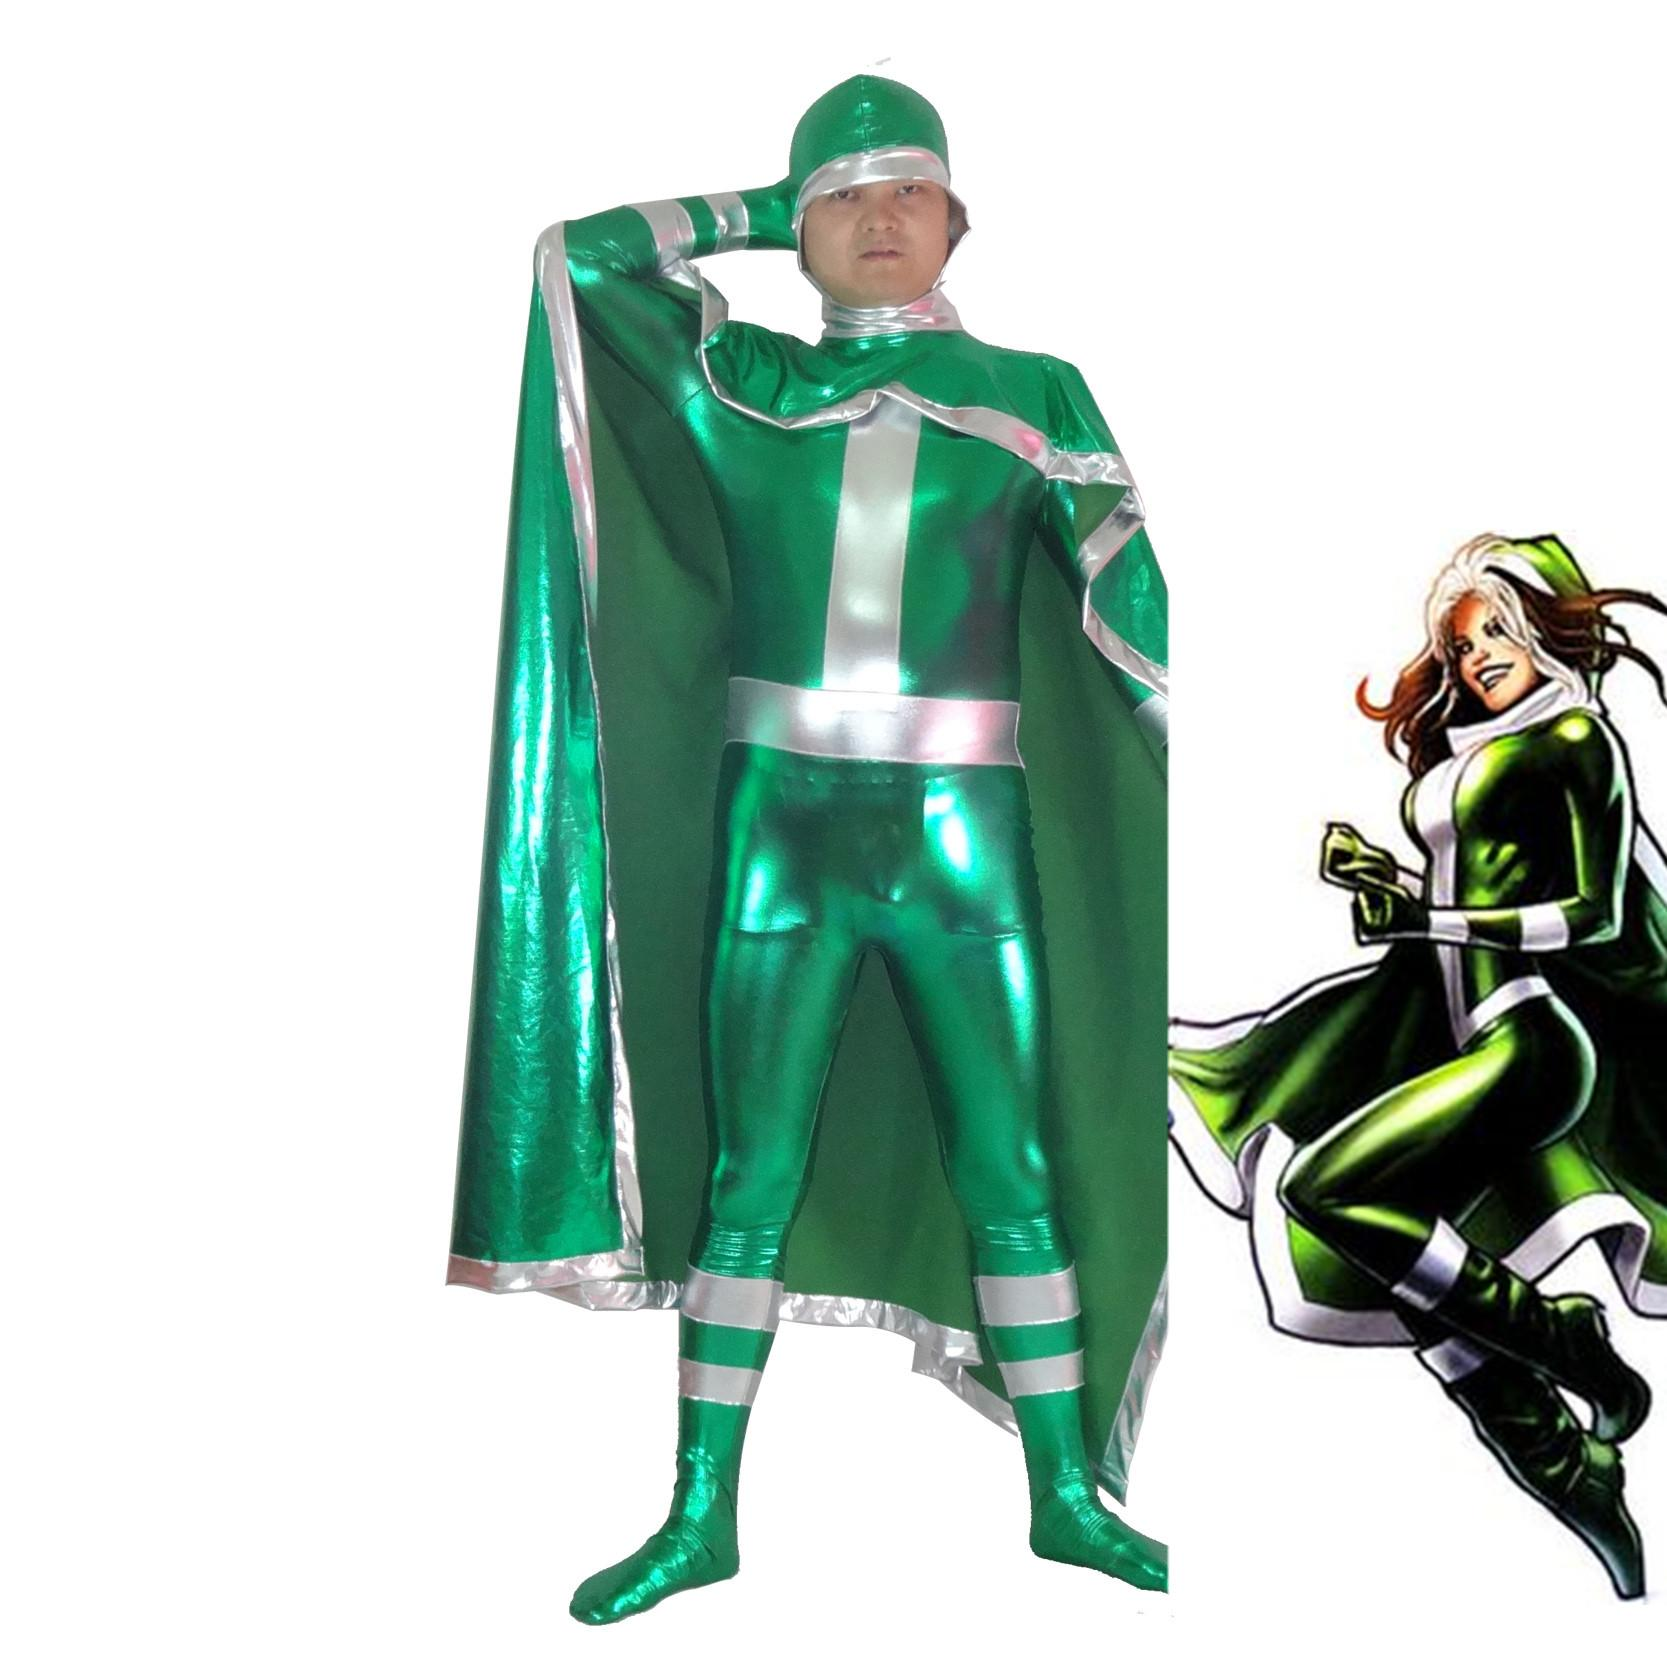 New X Men Rogue Green Superhero Costume Halloween Party Cosplay Sexy Costumes Catsuit Zentai Suit Costumes For Teams Good Costumes For A Party From Byydgj ...  sc 1 st  DHgate.com & New X Men Rogue Green Superhero Costume Halloween Party Cosplay Sexy ...